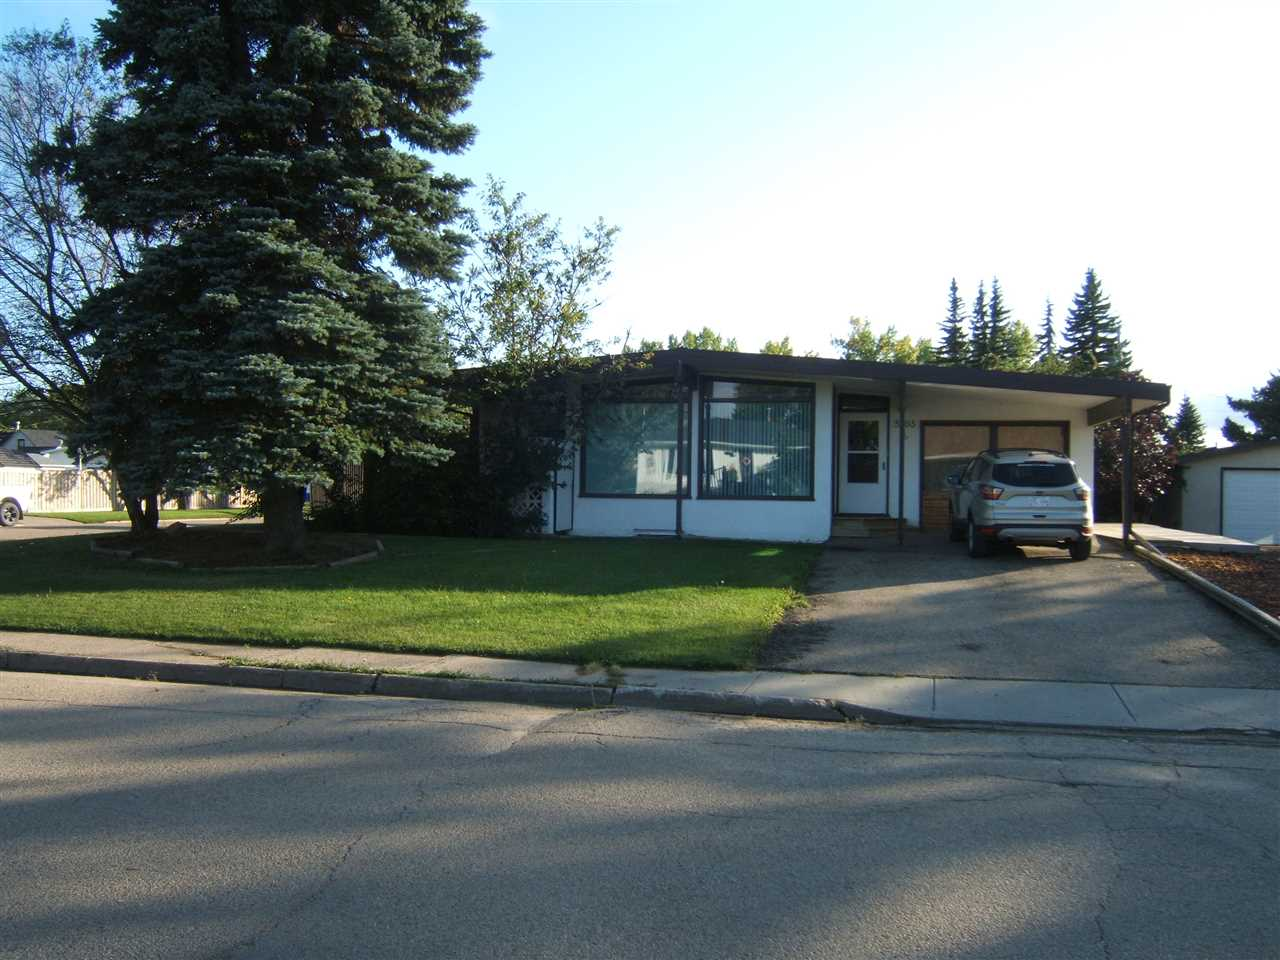 Great Value in this Well Maintained 1500+ sq ft,  3 + 1 Bedroom Home With 22' x 24' , 2 Car Garage On Large 75' x 140' Corner Lot In The Friendly Community Of Viking. Features and Recent Upgrades Include Laminate Flooring, Sitting Area With Gas Fireplace/Stove, Abundance of Maple Cupboards, Quality Appliances, Spacious Living Room With Large Windows for Plenty of Natural Light, Open Beam Ceiling, Mid Efficiency Furnace and a Metal Roof. Attached Garage Was Converted Into A Bonus Room Giving You Plenty Of Room For Family Activities and Gatherings. Next to the 2 Car Garage Is Space For R.V. Parking. Great Property for a Growing Family or Retirement Couple. This May Be The Property You Are Looking For!